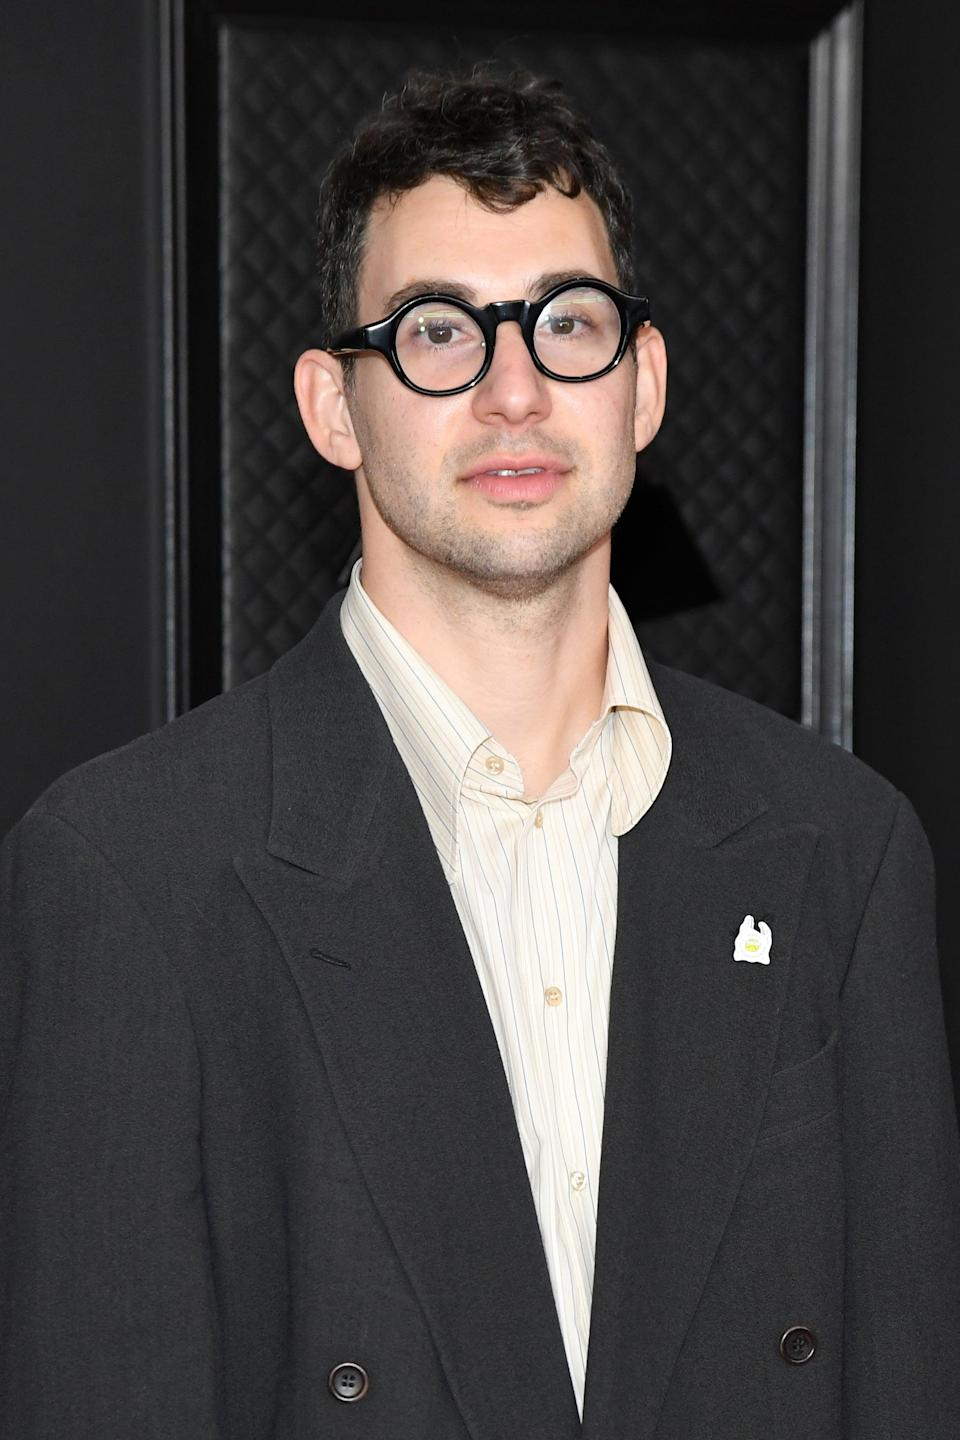 """<p>Most recently, Margaret was linked to Bleachers' lead singer <a href=""""http://www.popsugar.com/Jack-Antonoff"""" class=""""link rapid-noclick-resp"""" rel=""""nofollow noopener"""" target=""""_blank"""" data-ylk=""""slk:Jack Antonoff"""">Jack Antonoff</a>. Back in August, the two fueled romance rumors after being spotted making out and <a href=""""http://www.popsugar.com/celebrity/jack-antonoff-and-margaret-qualley-dating-48465177"""" class=""""link rapid-noclick-resp"""" rel=""""nofollow noopener"""" target=""""_blank"""" data-ylk=""""slk:frolicking around New York City"""">frolicking around New York City</a> hand in hand. Neither celebrity has commented on the status of their relationship.</p>"""